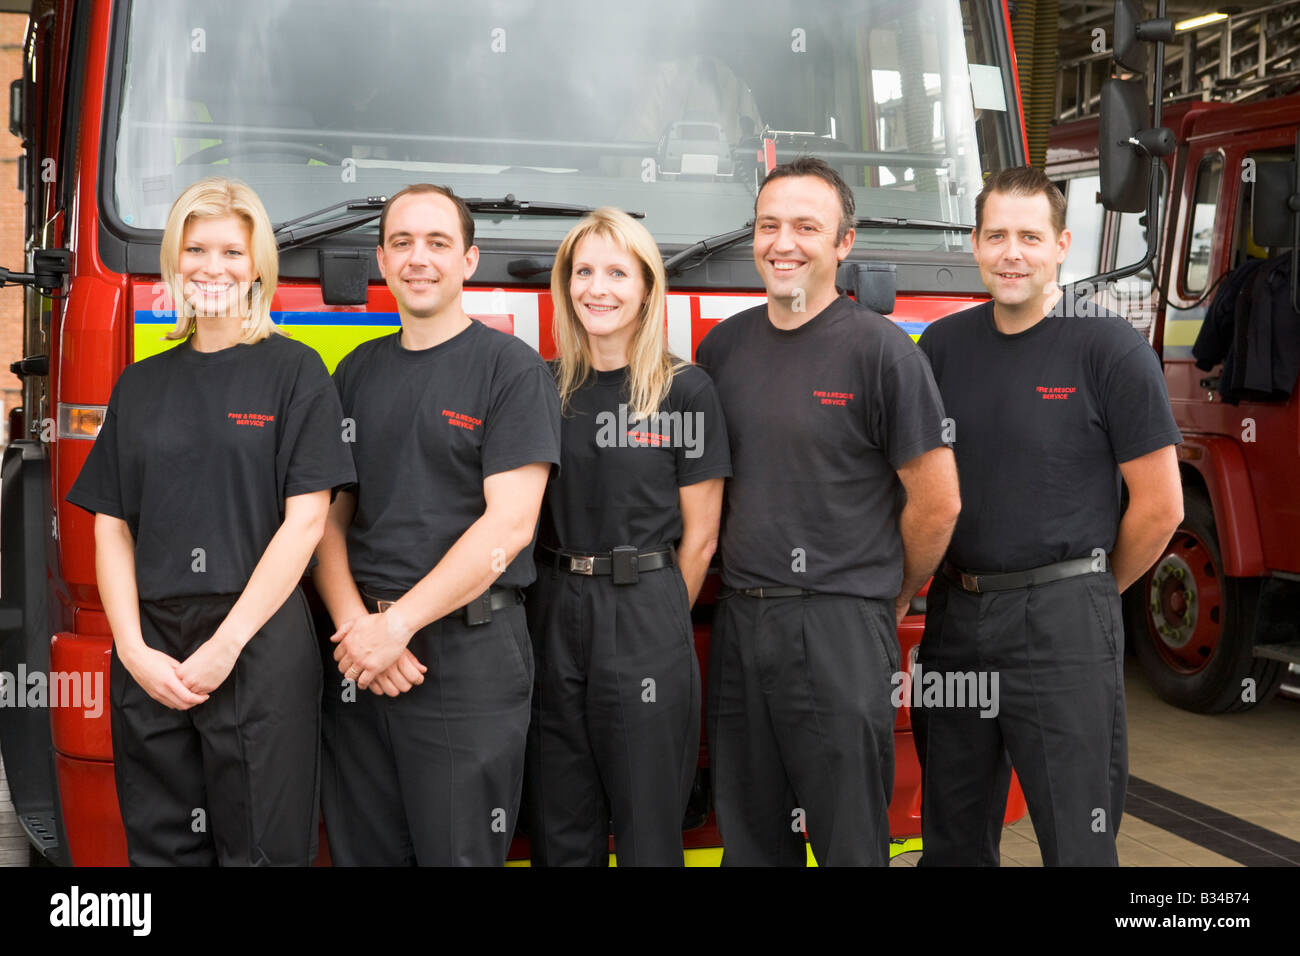 Five firefighters standing in front of fire engine - Stock Image